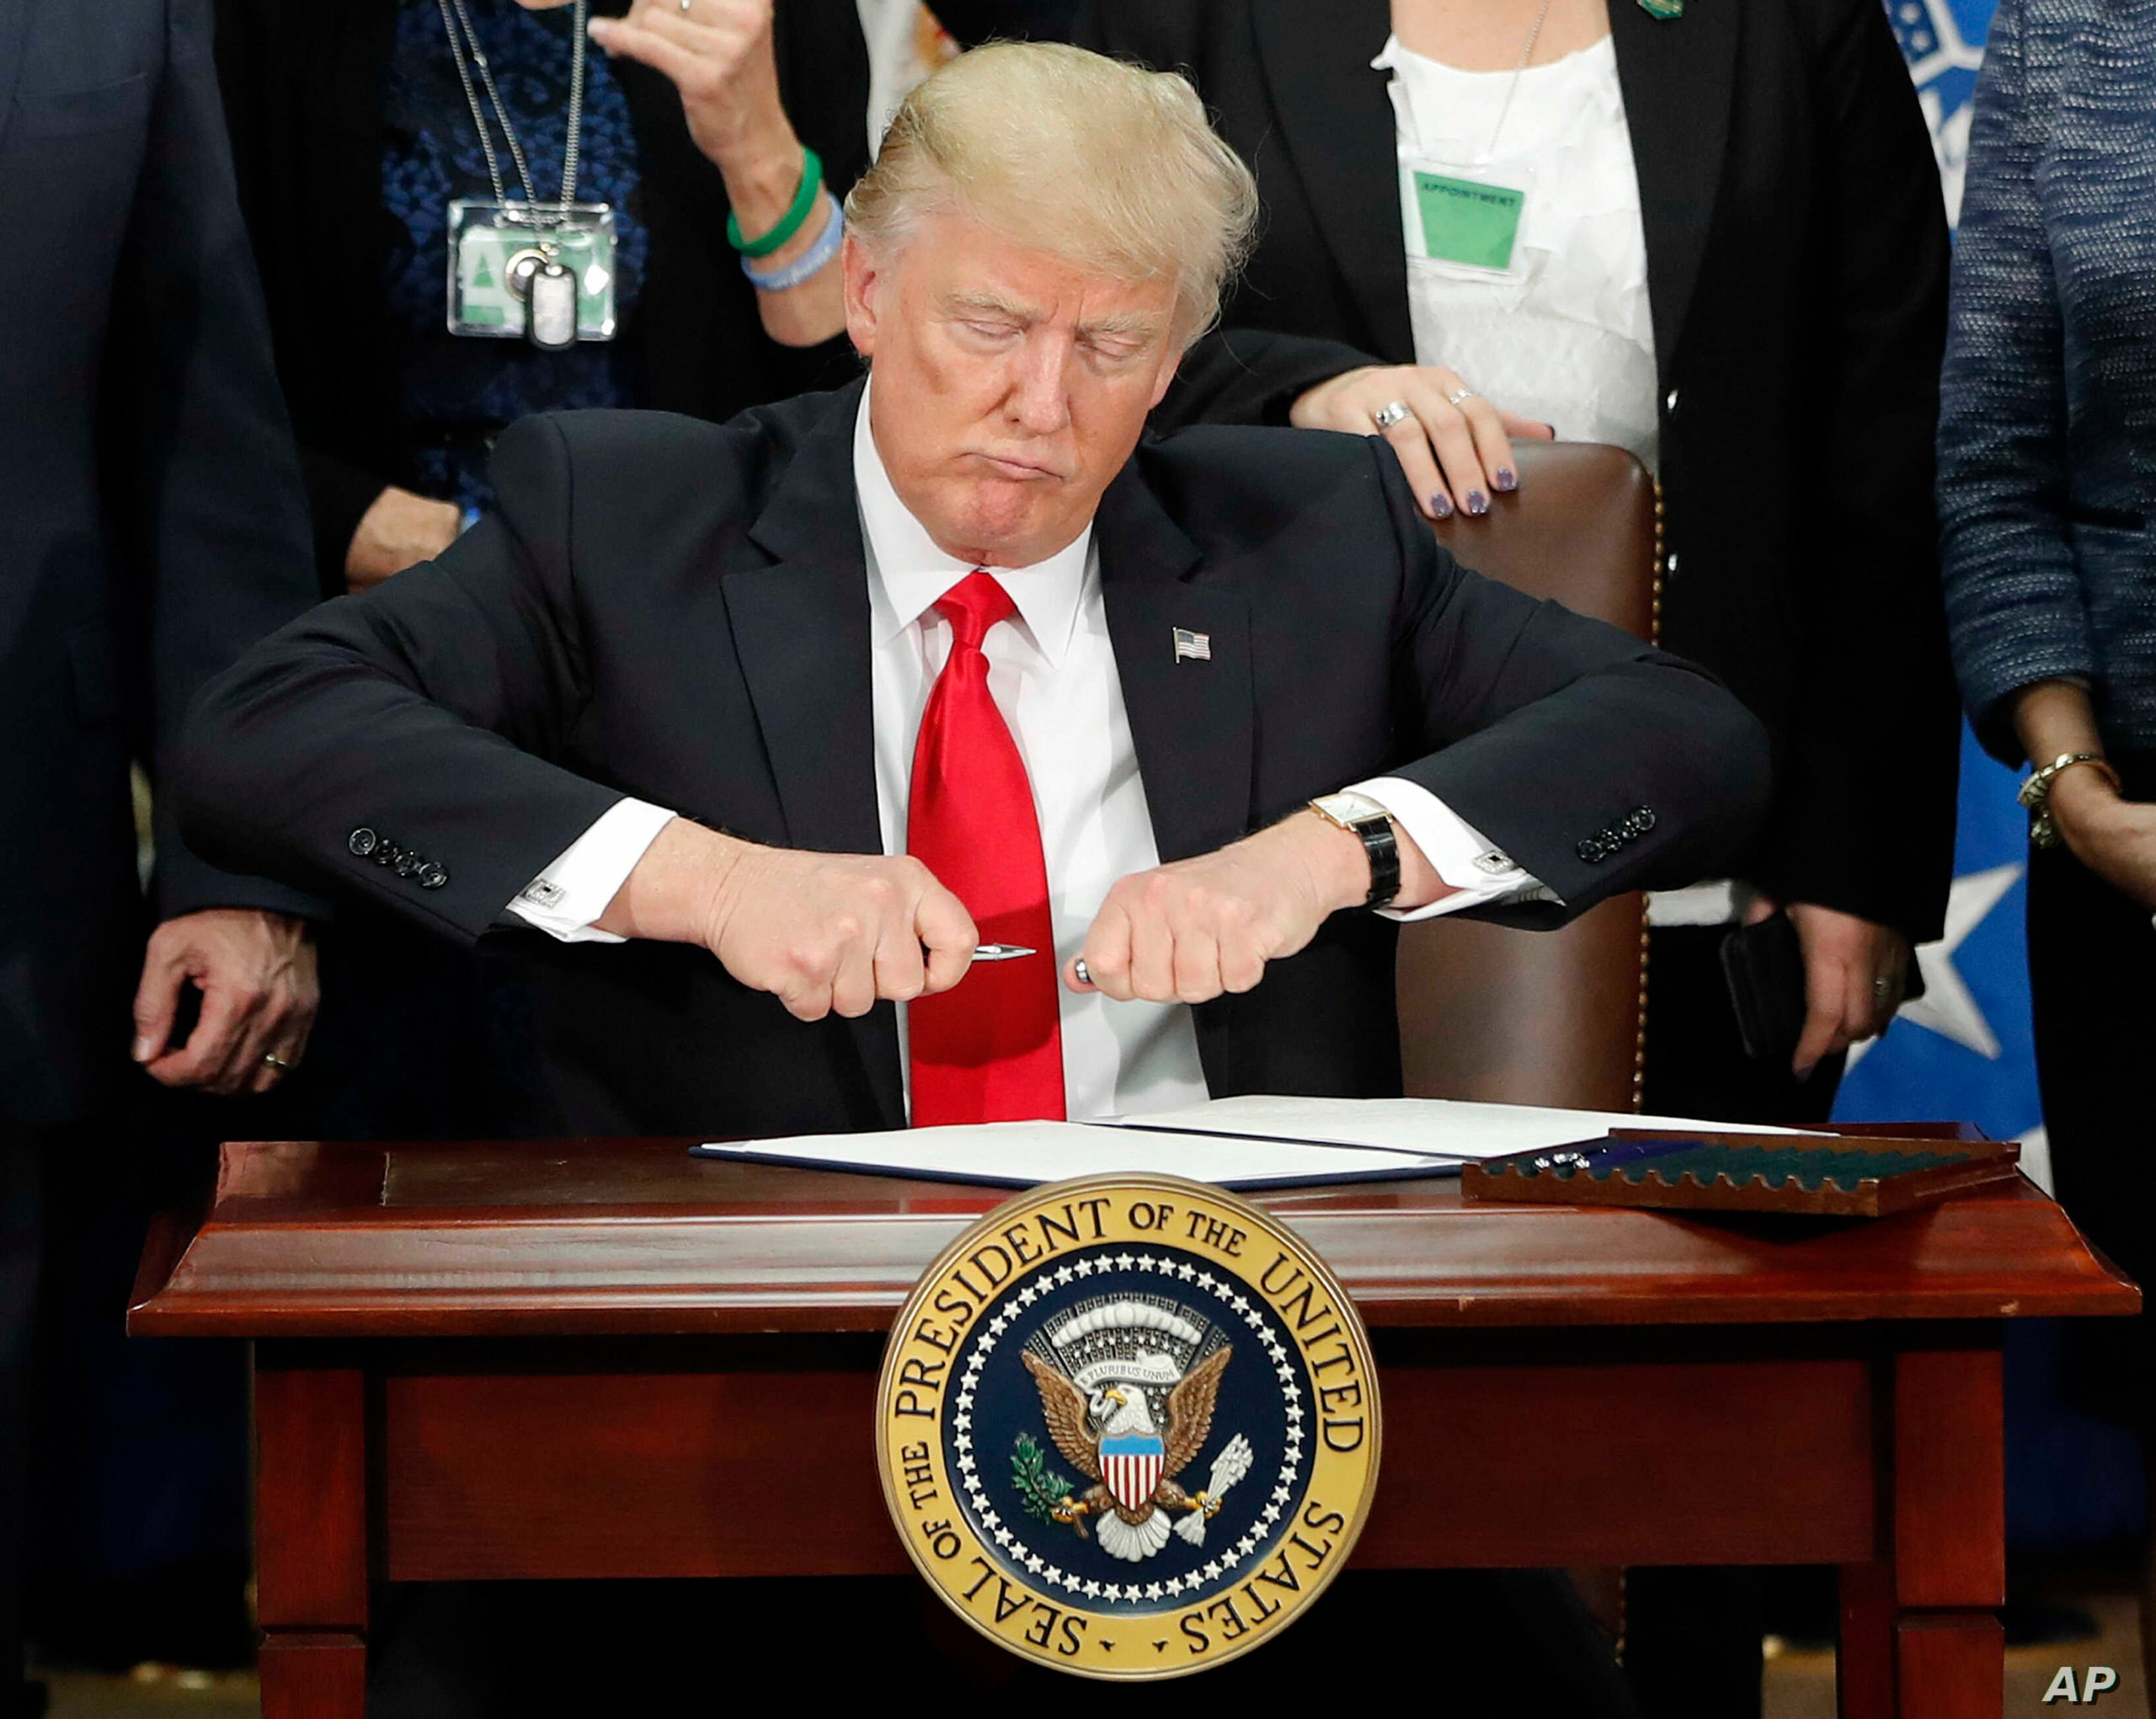 DAY 6 - In this Jan. 25, 2017, file photo, President Donald Trump takes the cap off a pen before signing executive order for immigration actions to build border wall during a visit to the Homeland Security Department in Washington. (AP Photo/Pablo Martinez Monsivais, File)